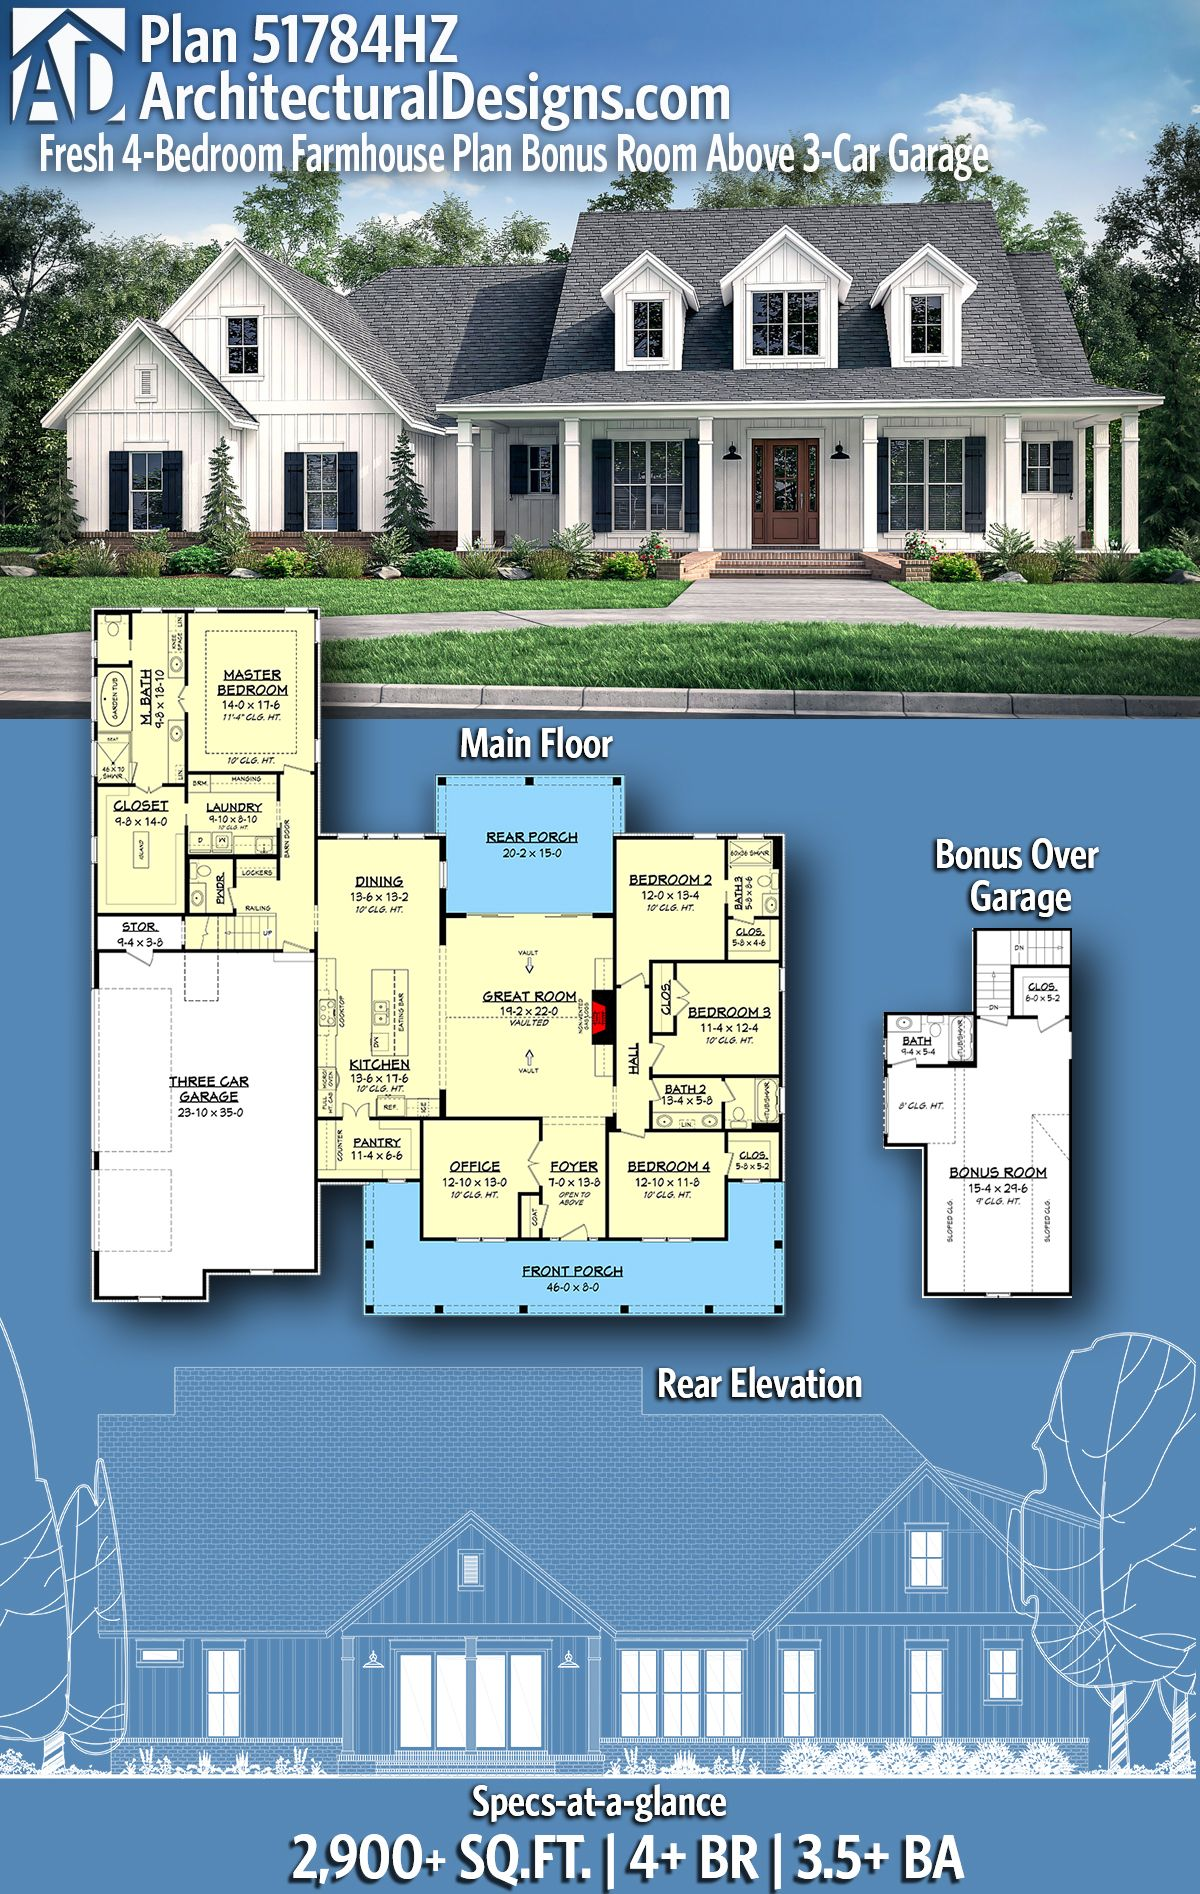 small resolution of desertrose architectural designs farmhouse plan 51784hz gives you 4 beds 3 5 baths 2 900 sq ft of heated living space with a bonus room above